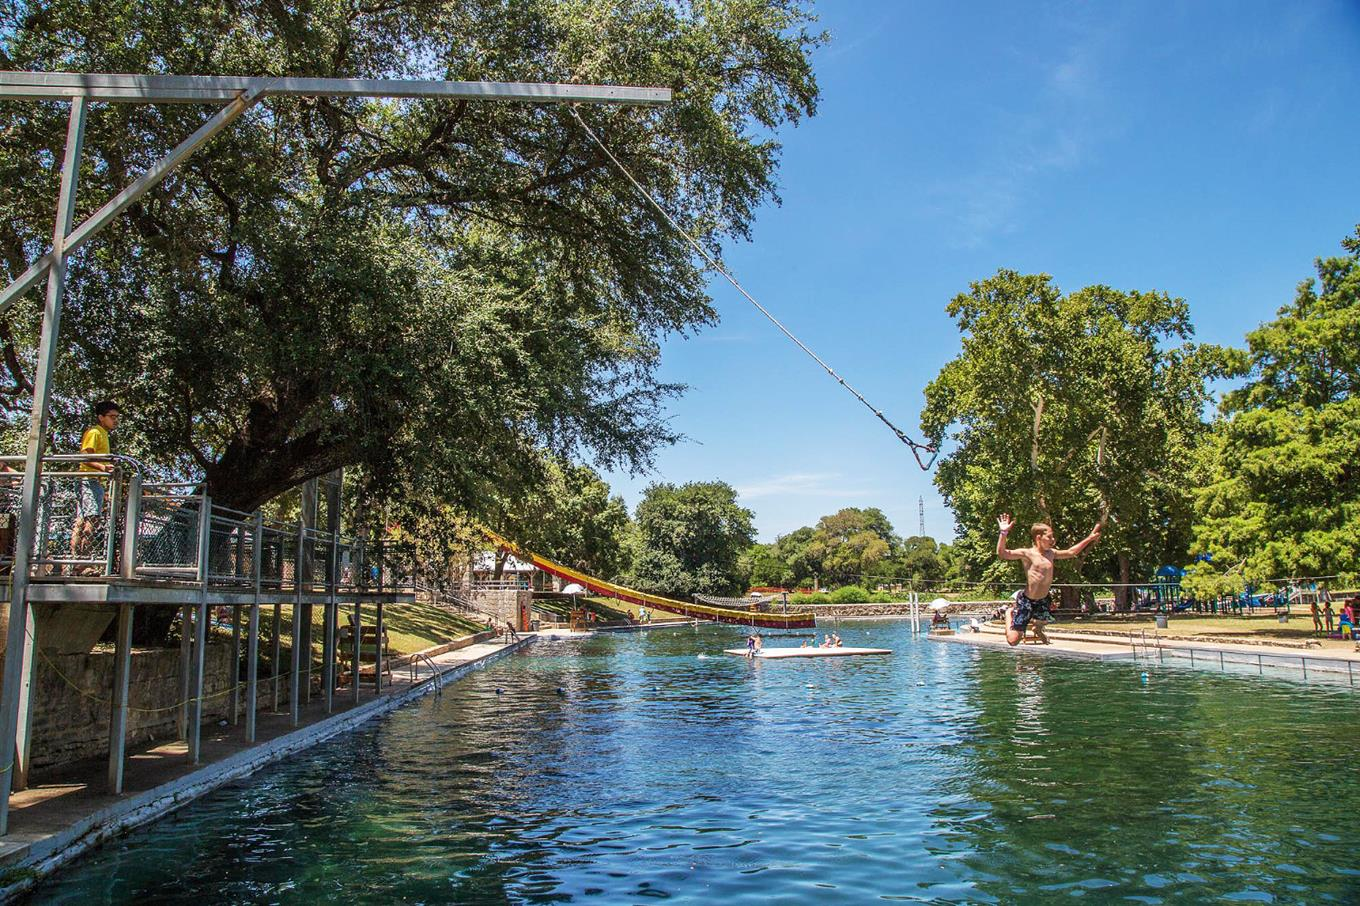 A boy jumps into the water off a rope swing